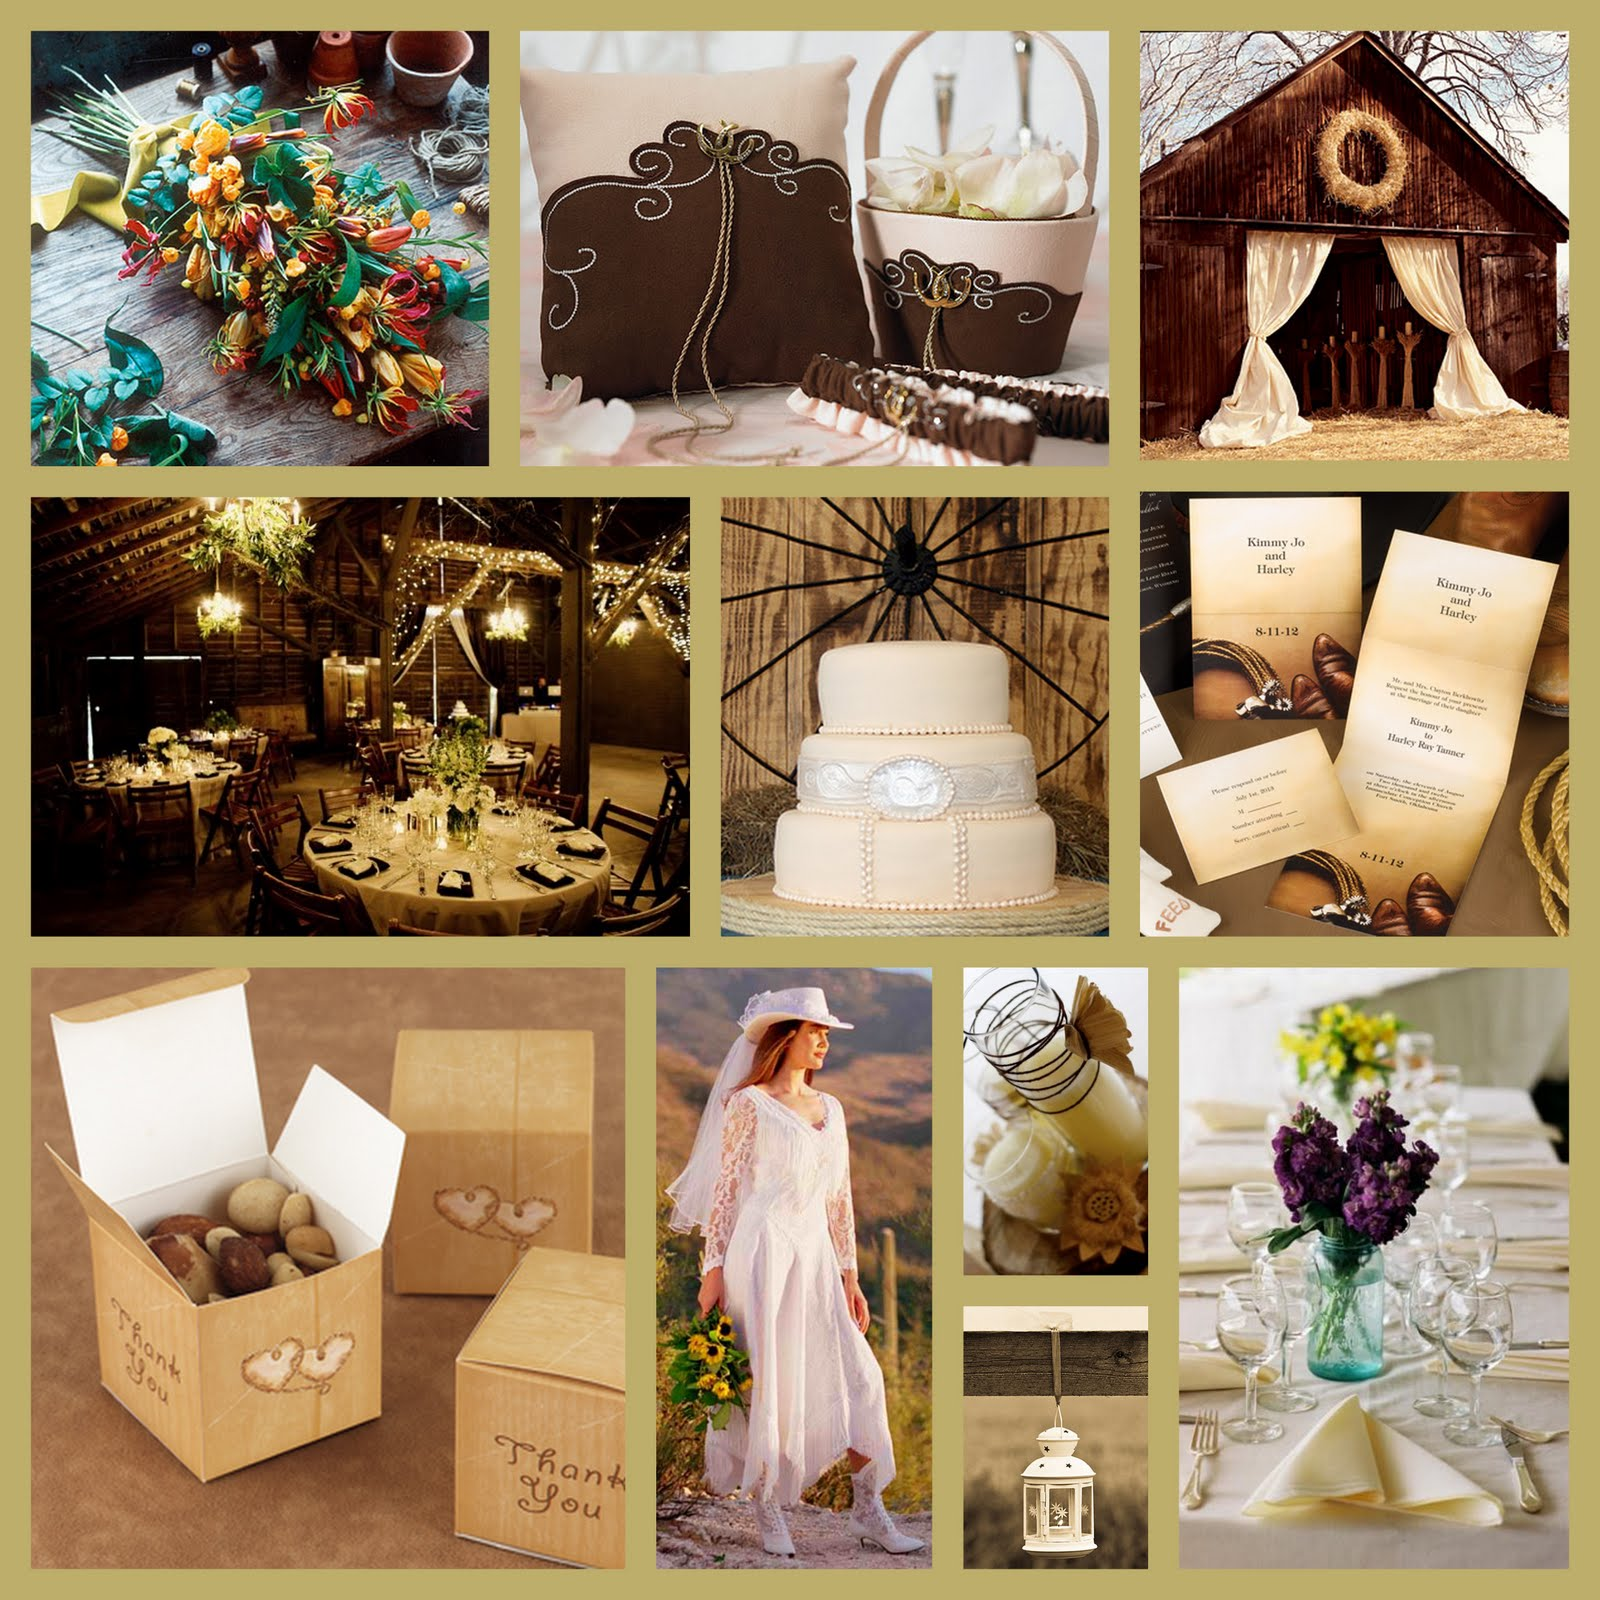 Cowboy Cowgirl Wedding Ideas: Rustic Wedding Theme Ideas